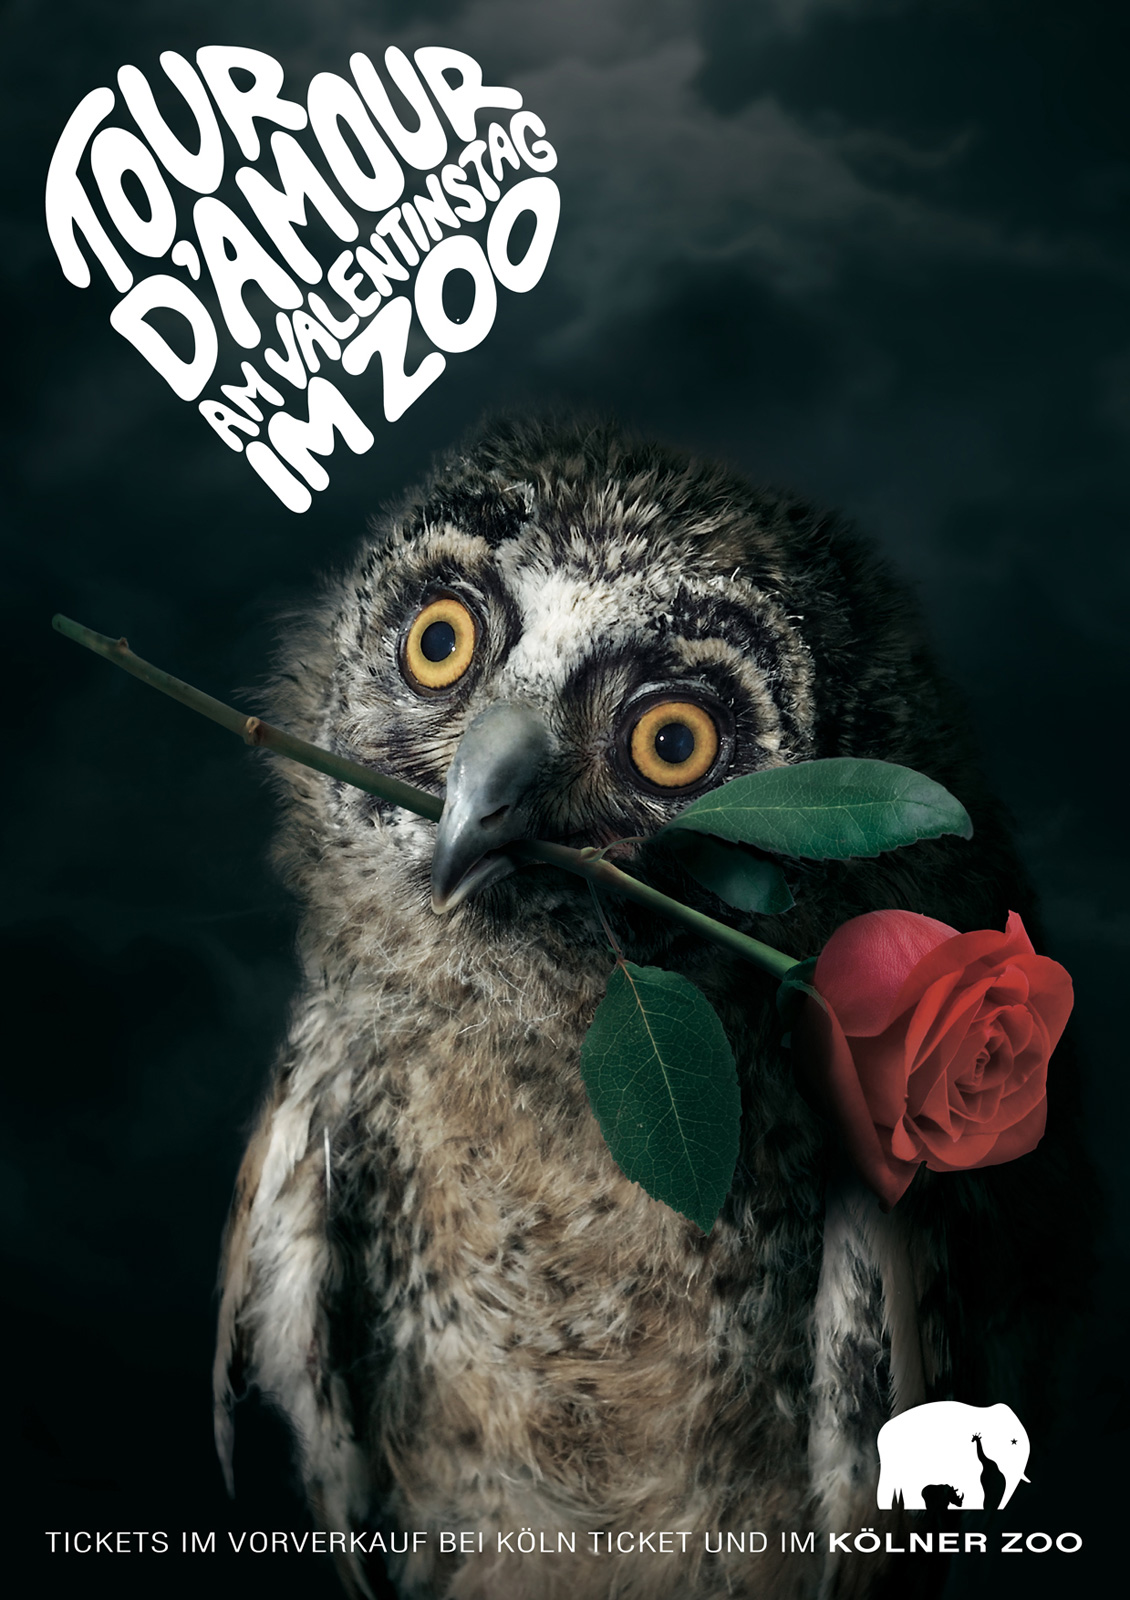 llllitl-kolner-zoo-koln-allemagne-deutschland-advertising-publicité-animals-saint-valentin-day-3